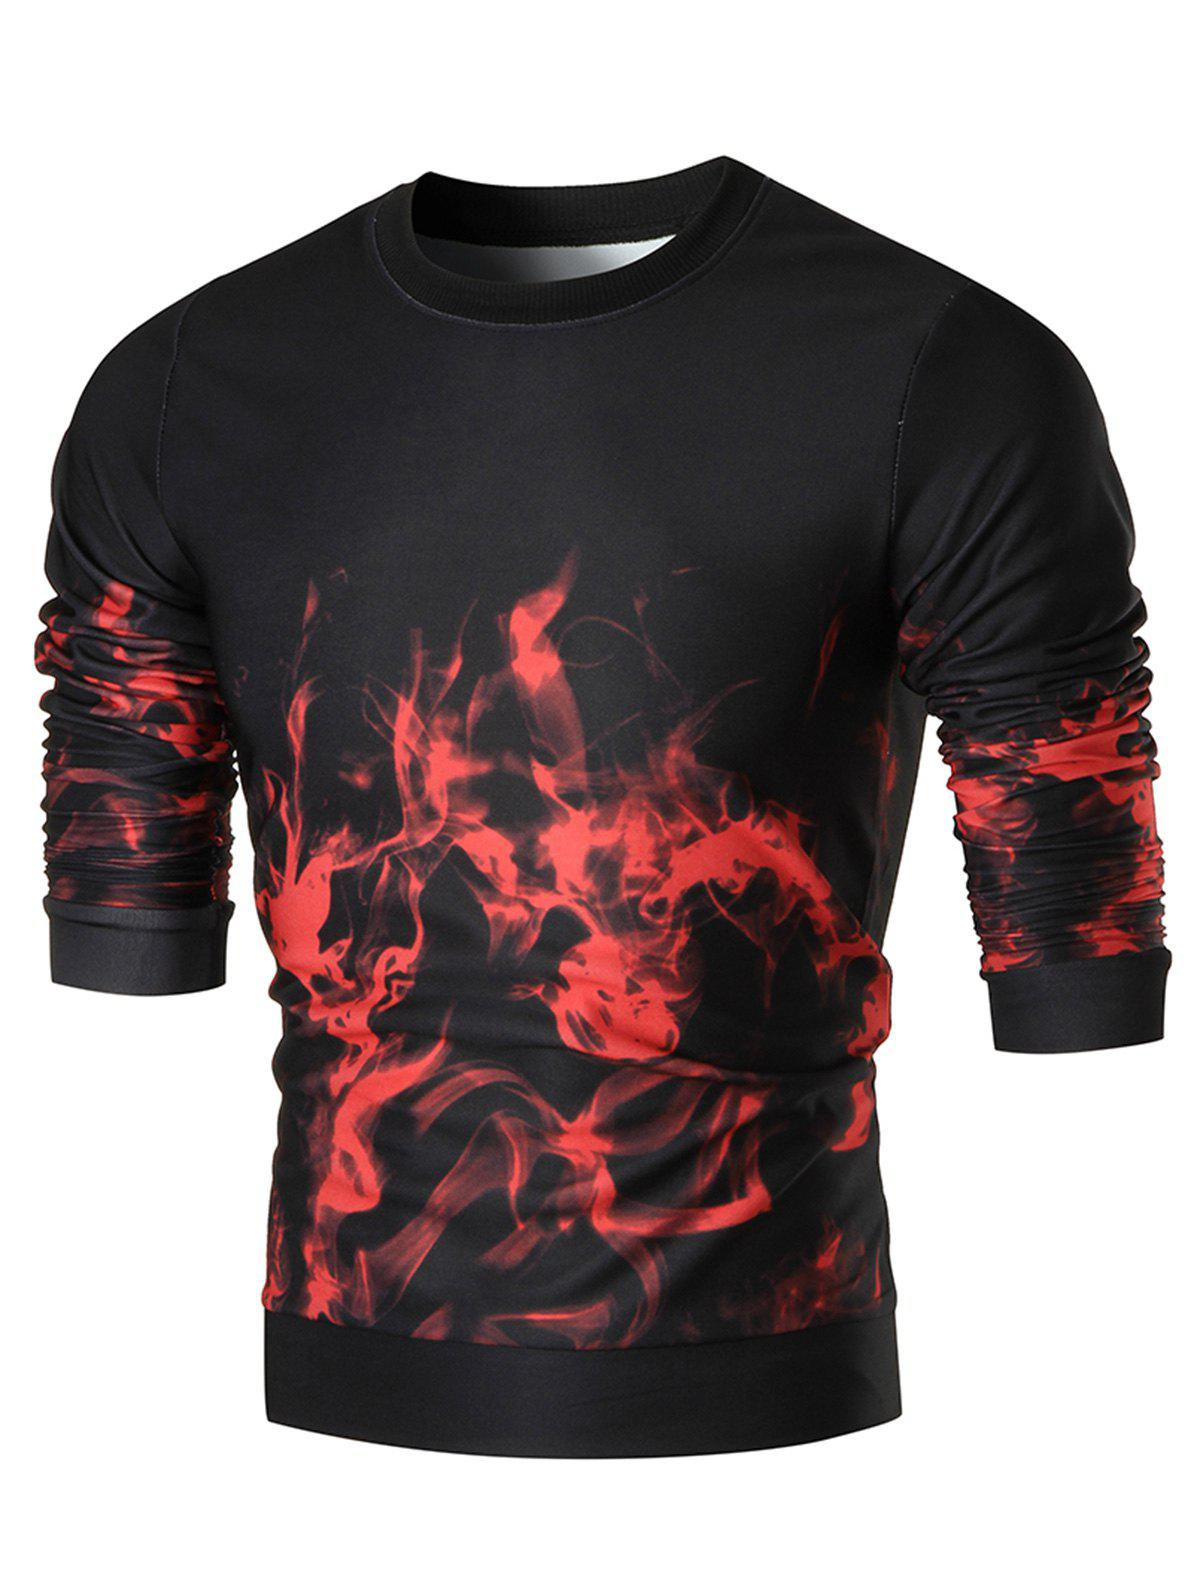 Flame Print Slim Fit Crew Neck Sweatshirt - COLORMIX XL